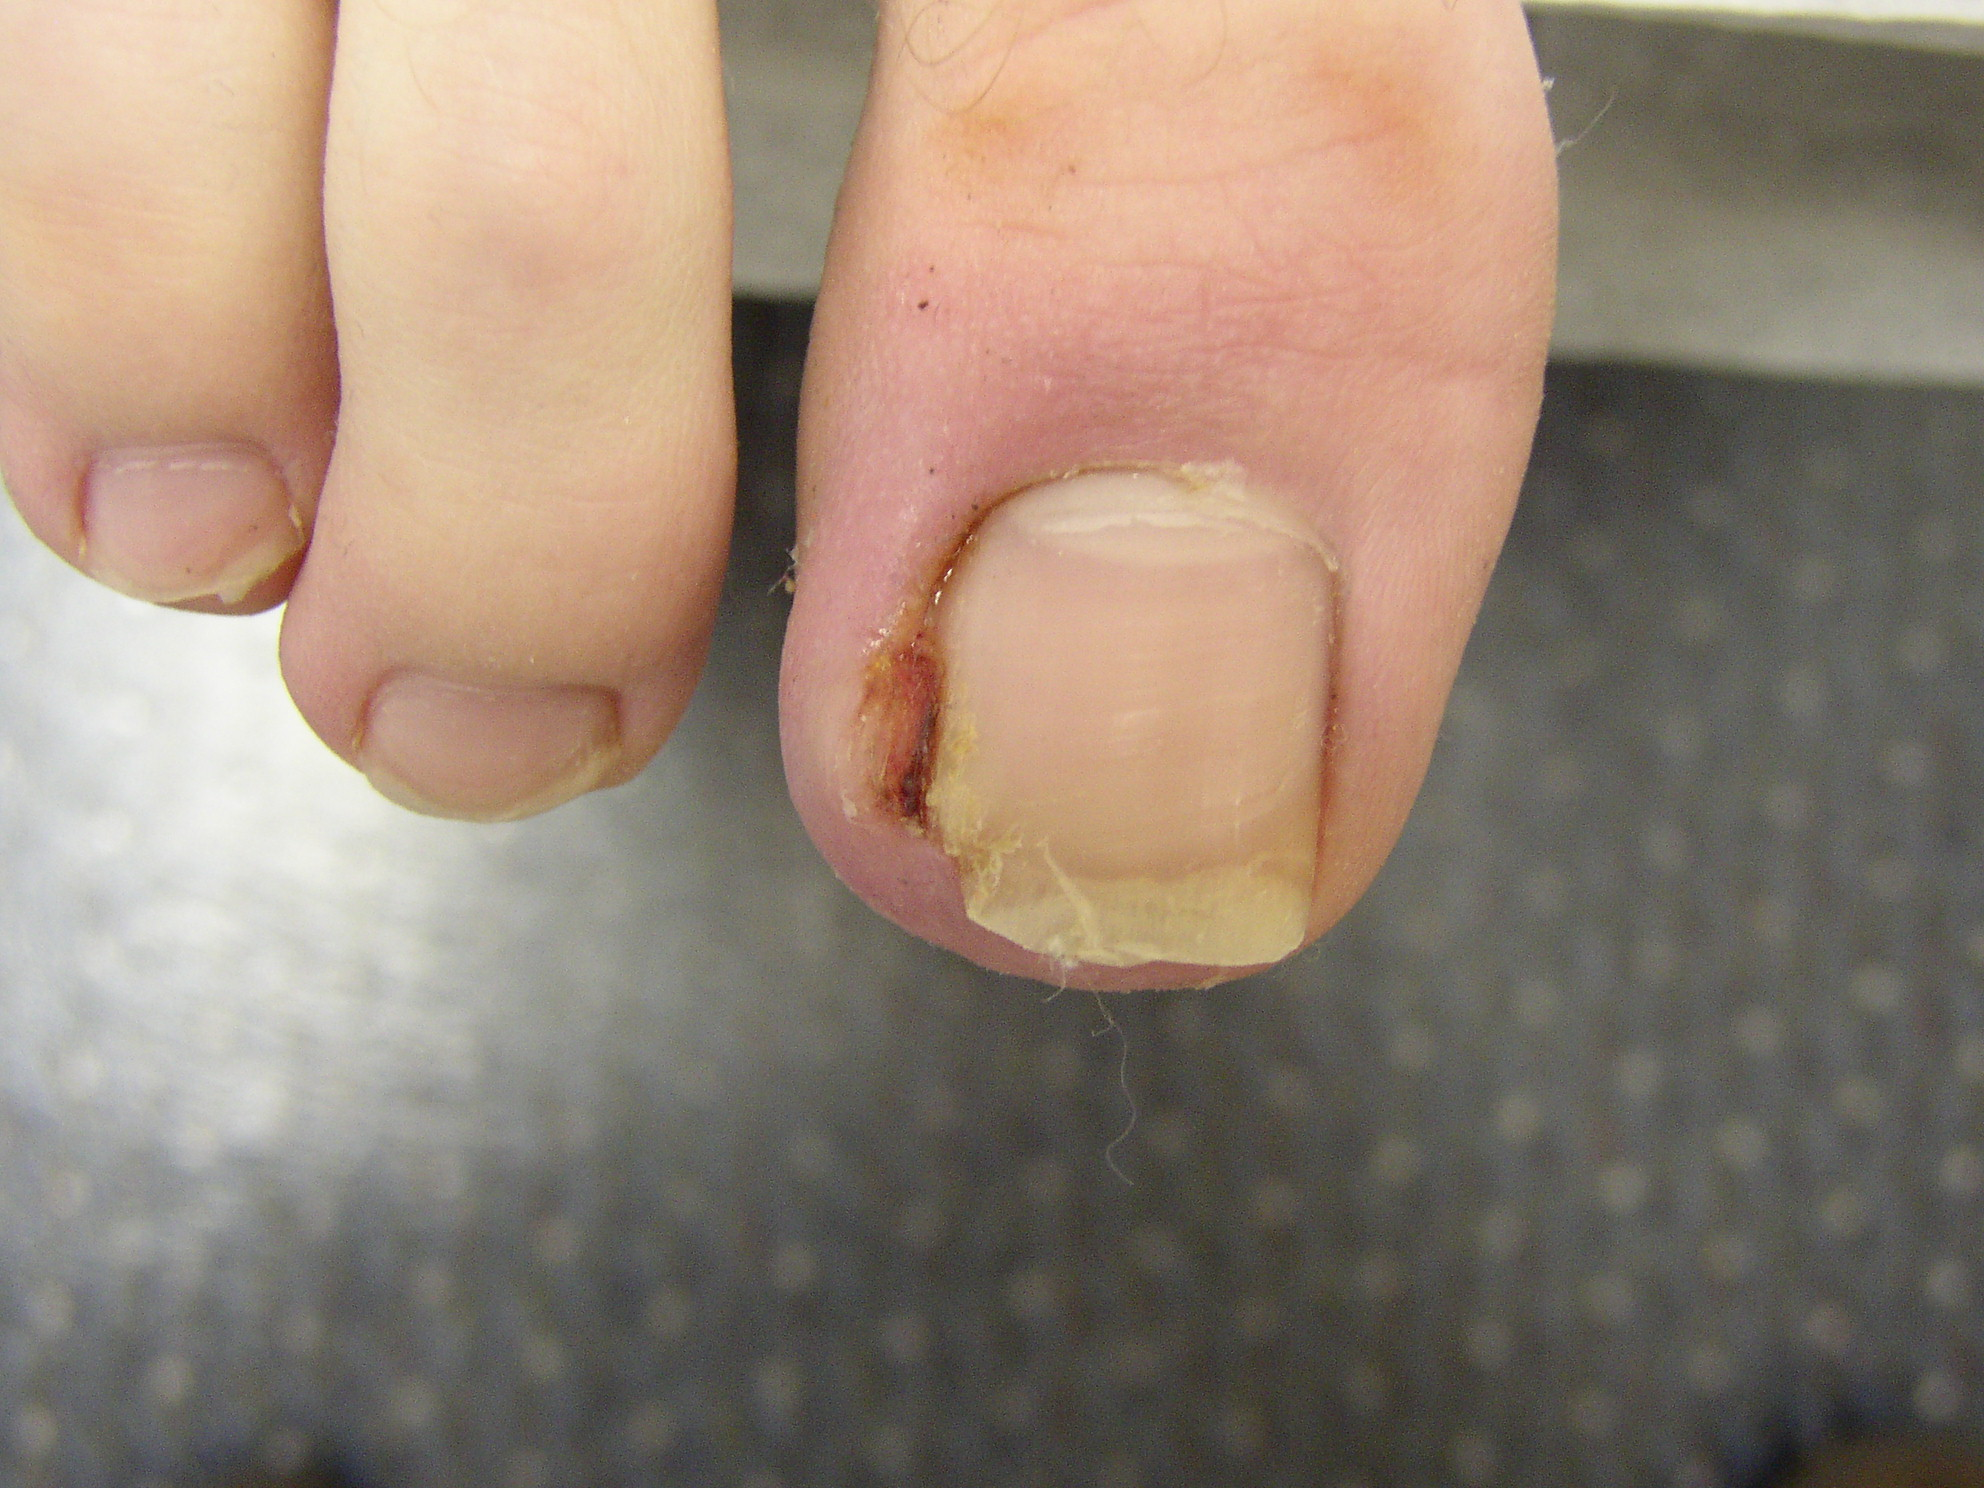 Nail Disorders | Med-Health.net